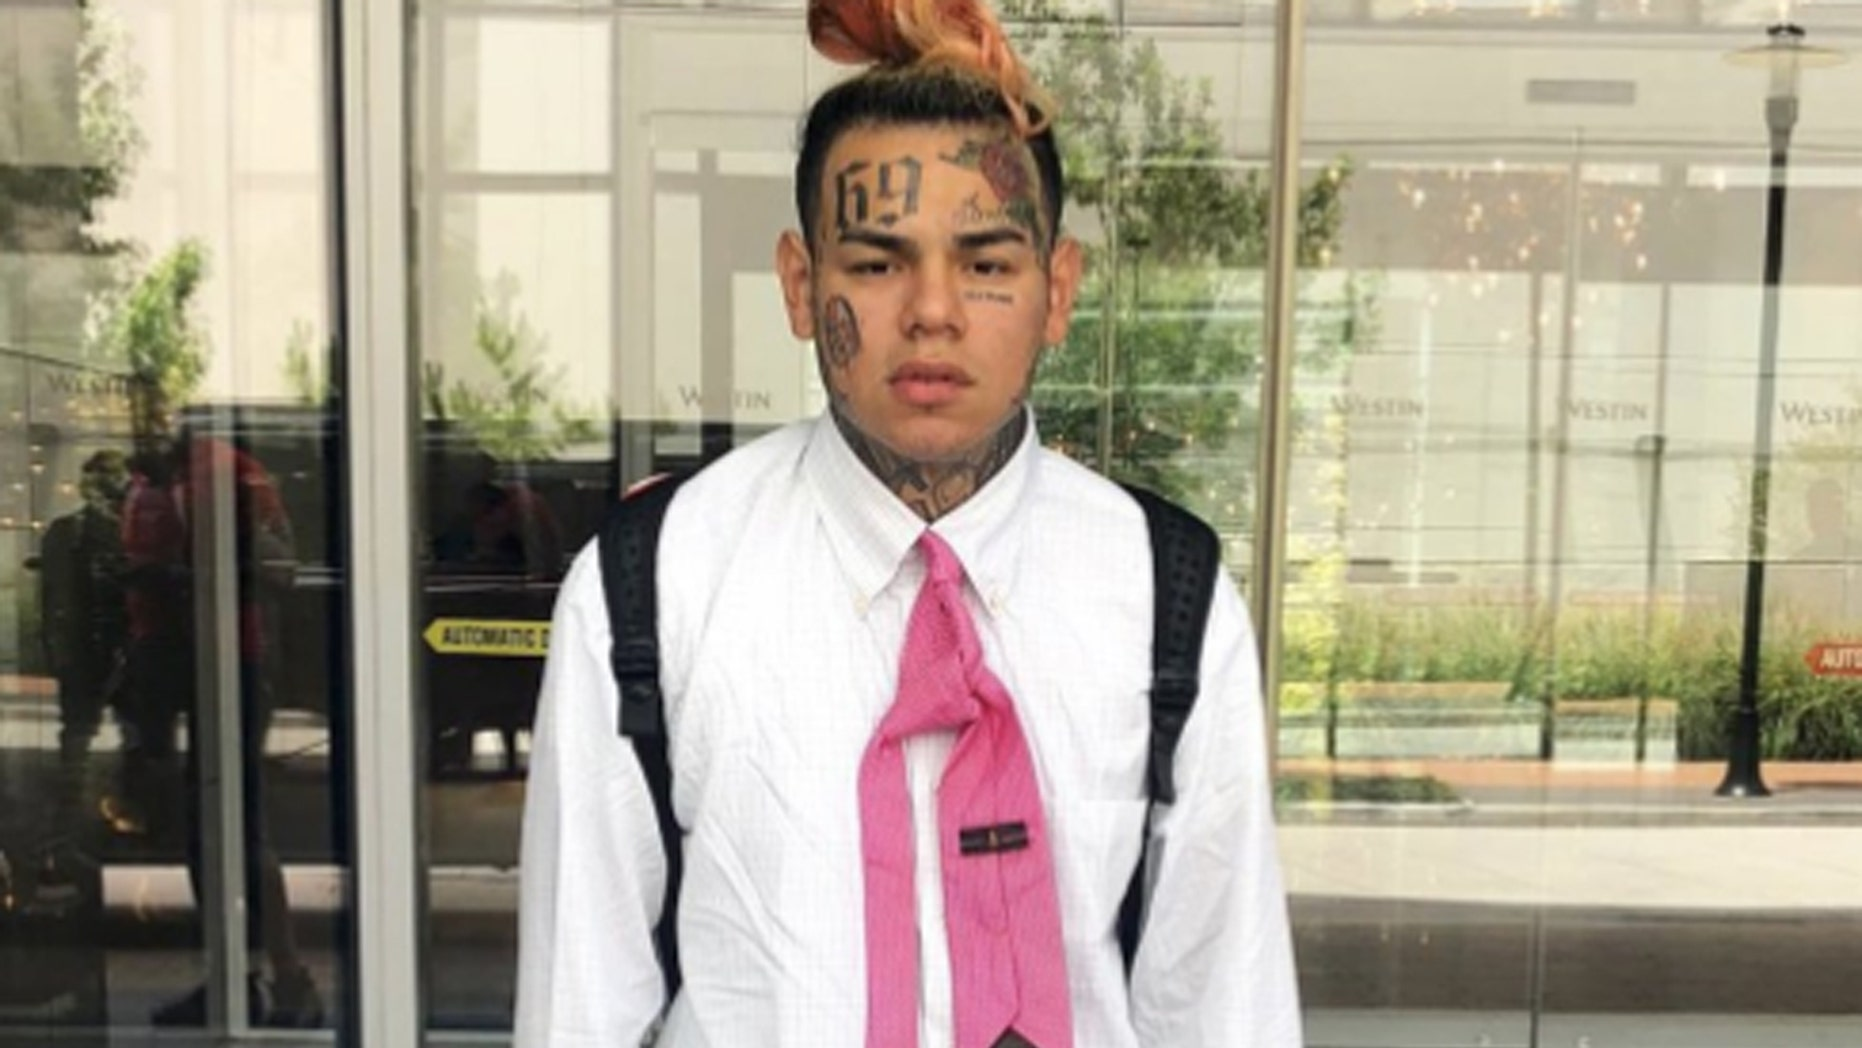 Tekashi 6ix9ine was hanging out at an infamous Queens strip club before he got held up this weekend, The New York Post reported.